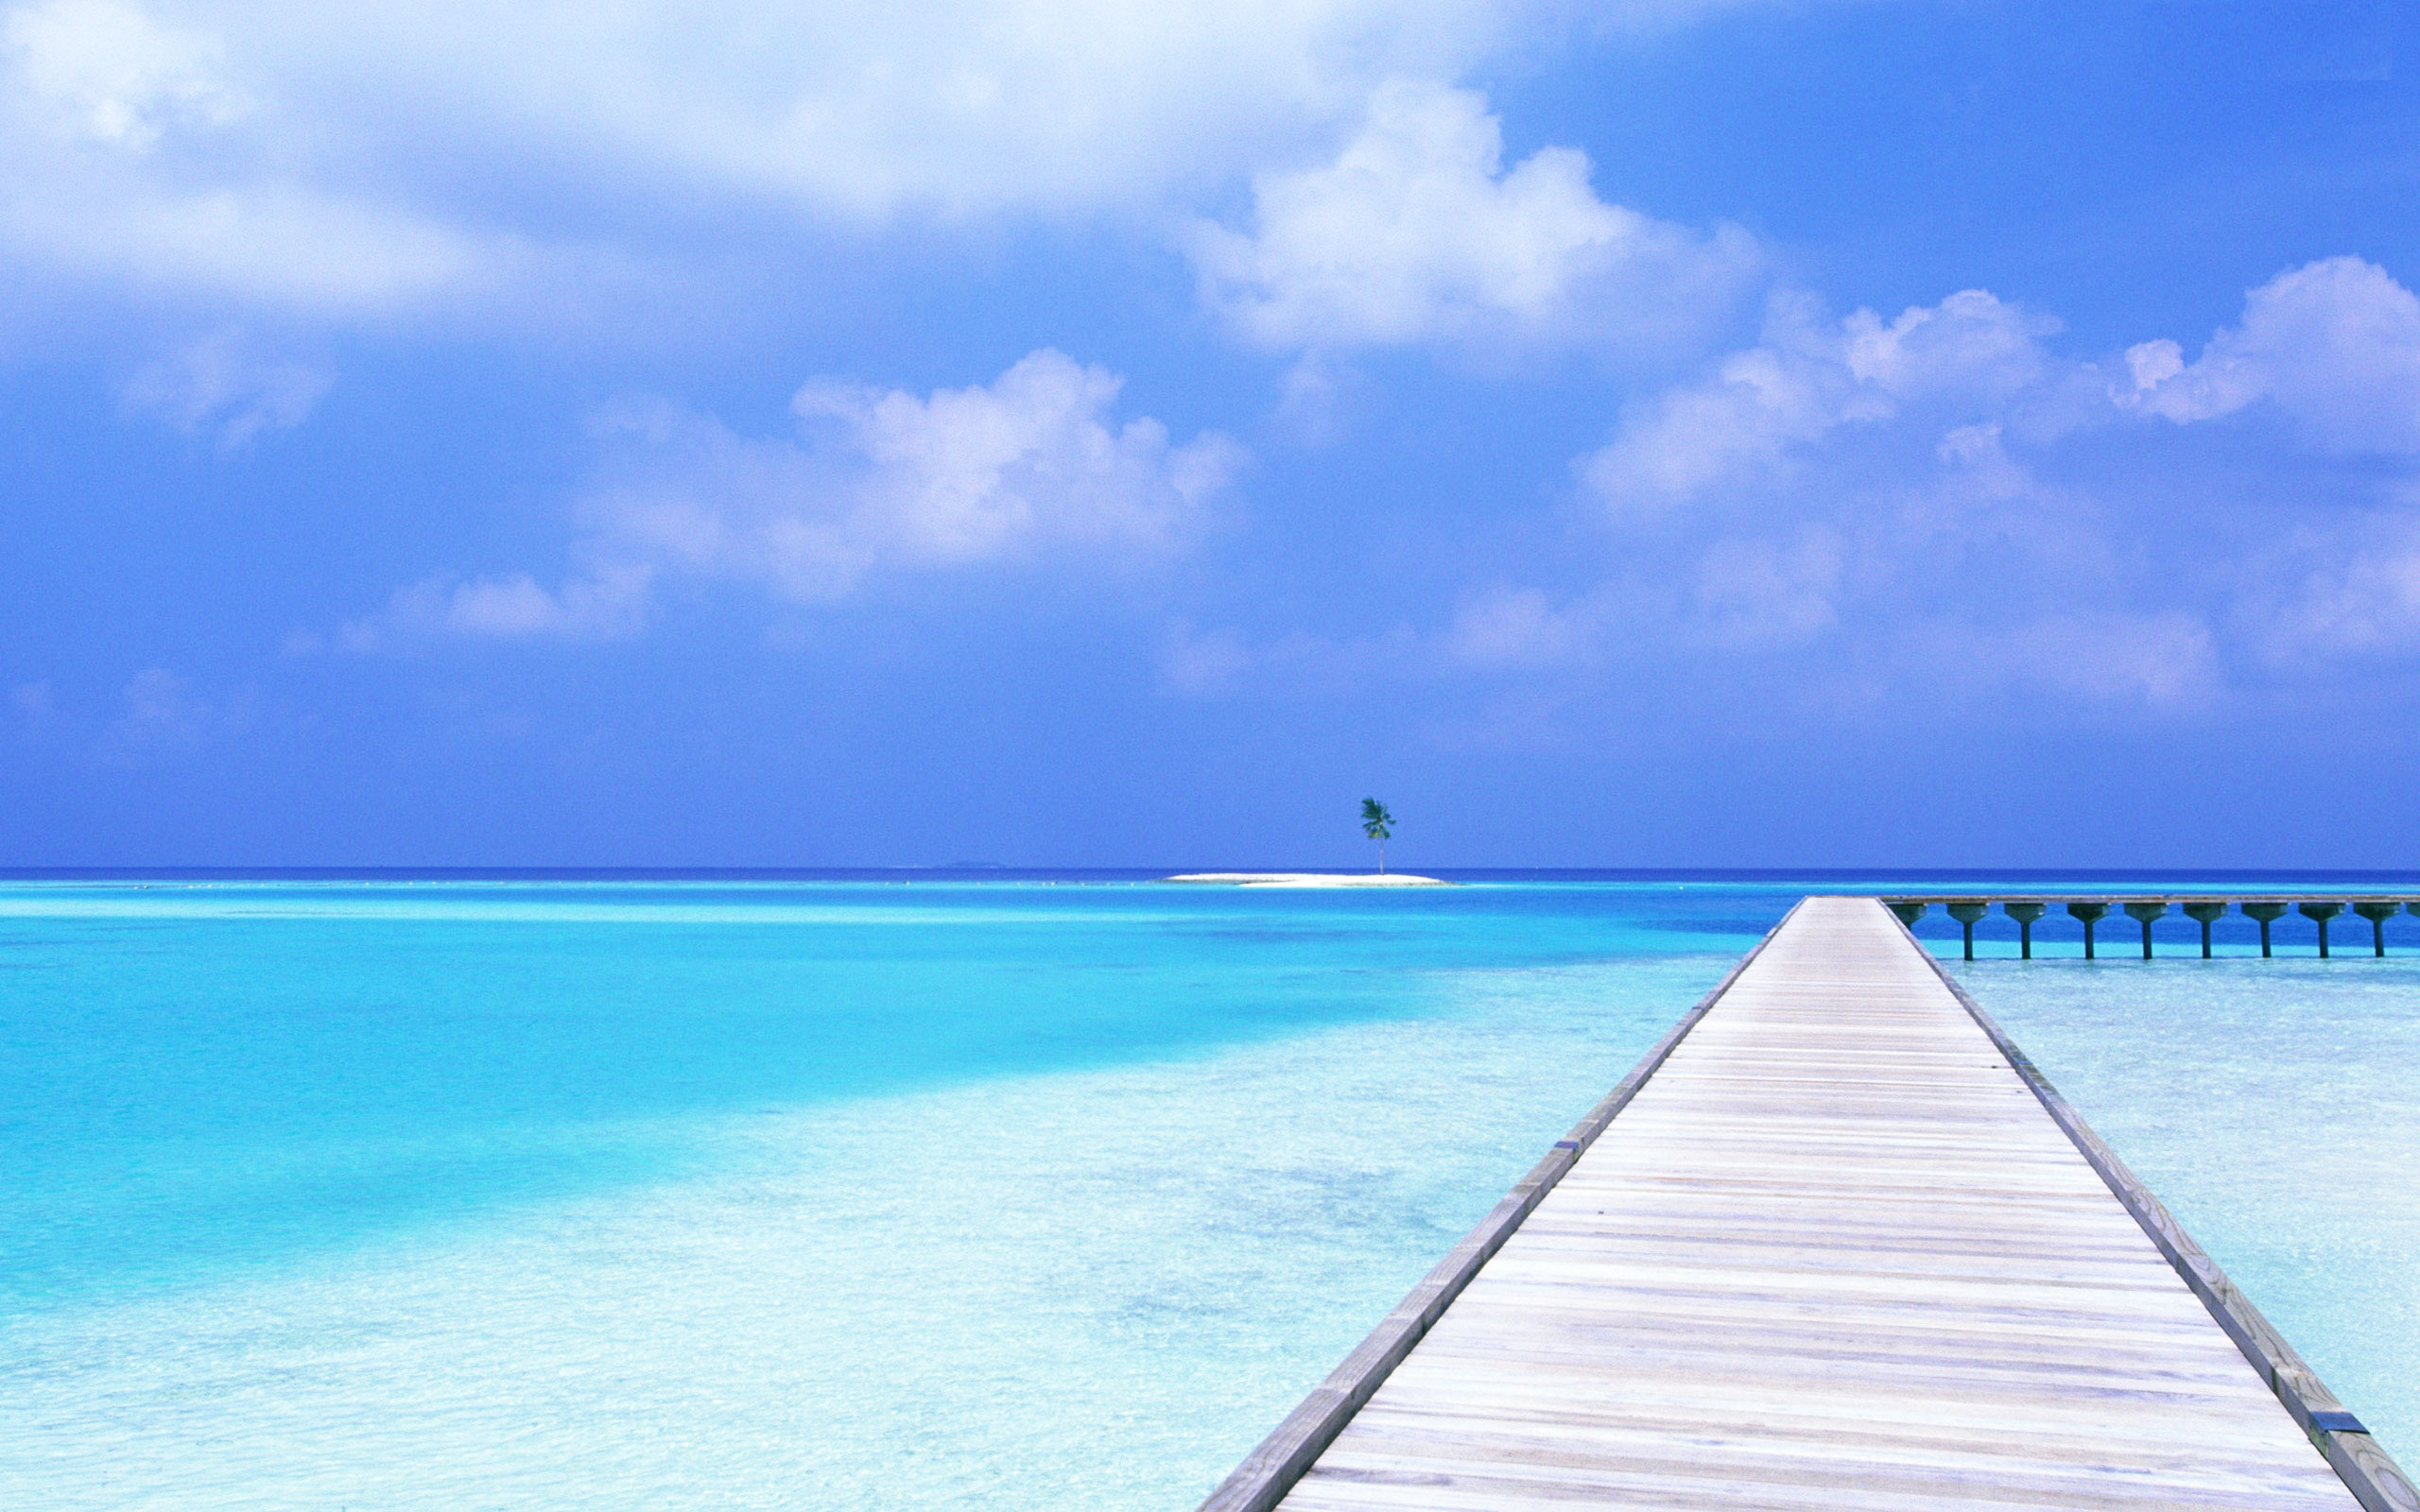 Crystal Blue Tropical Ocean Wallpaper Picture